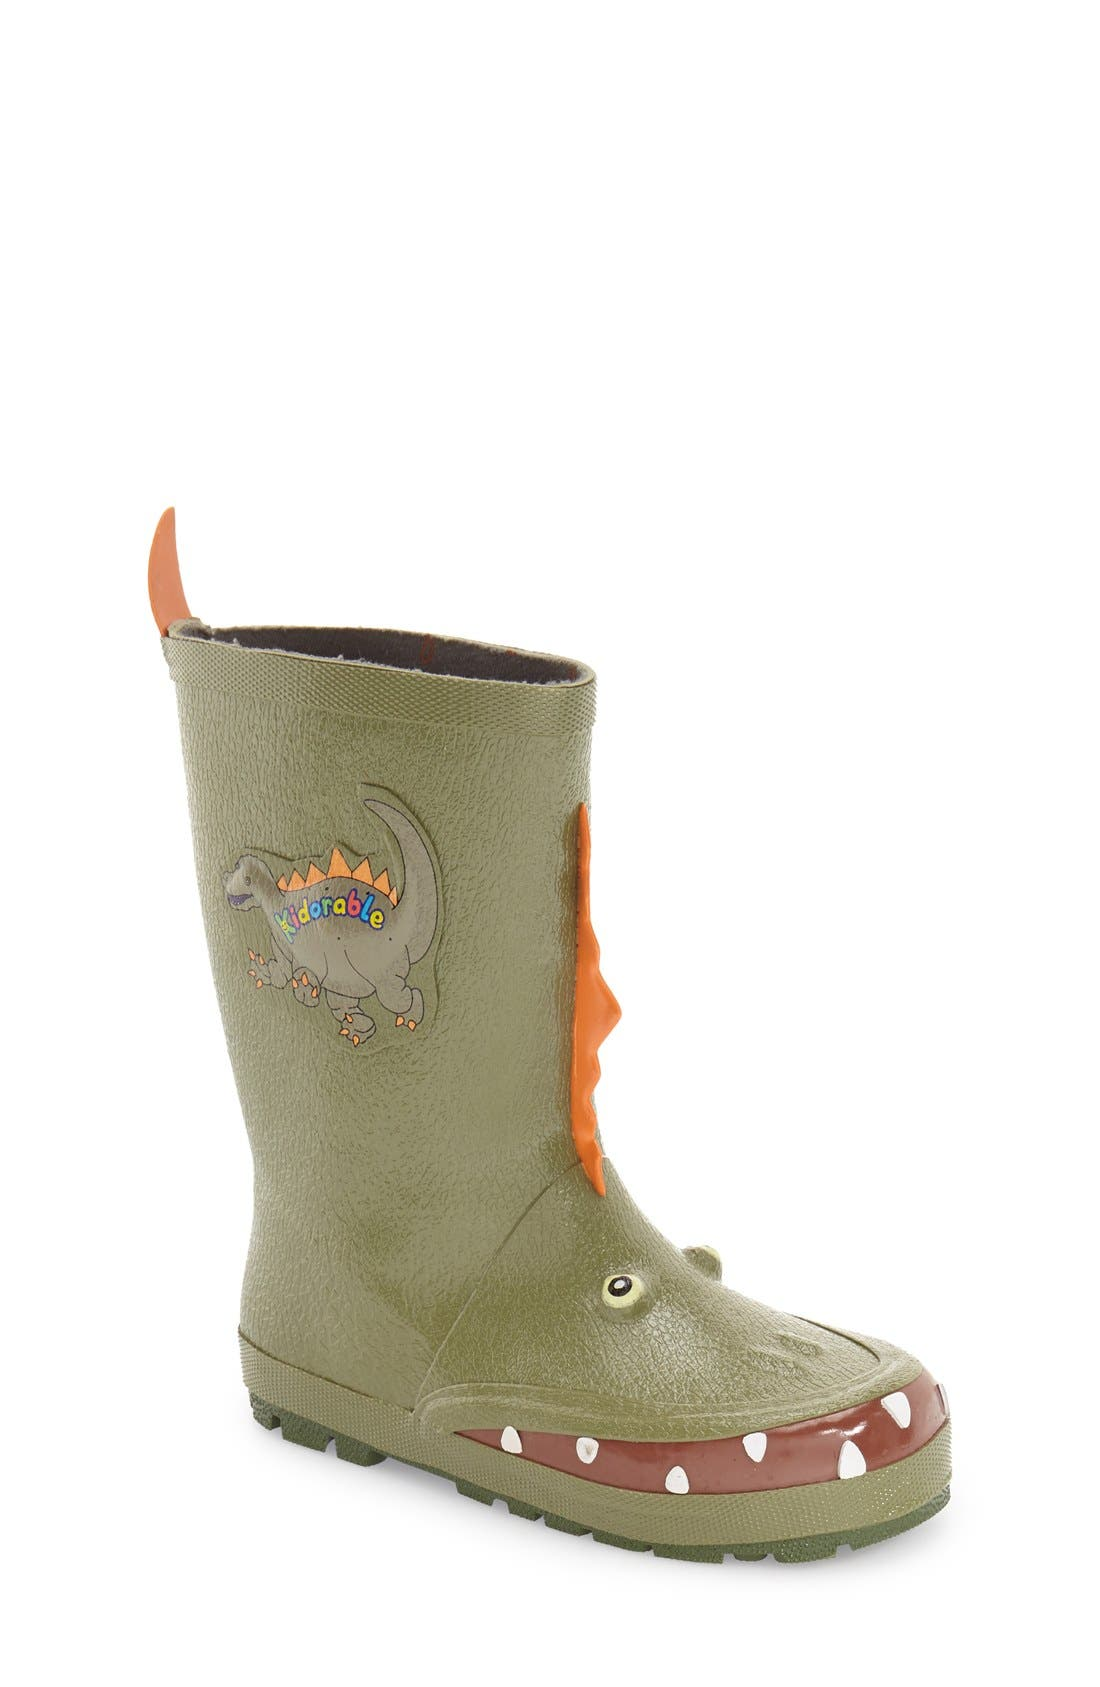 KIDORABLE Dinosaur Waterproof Rain Boot